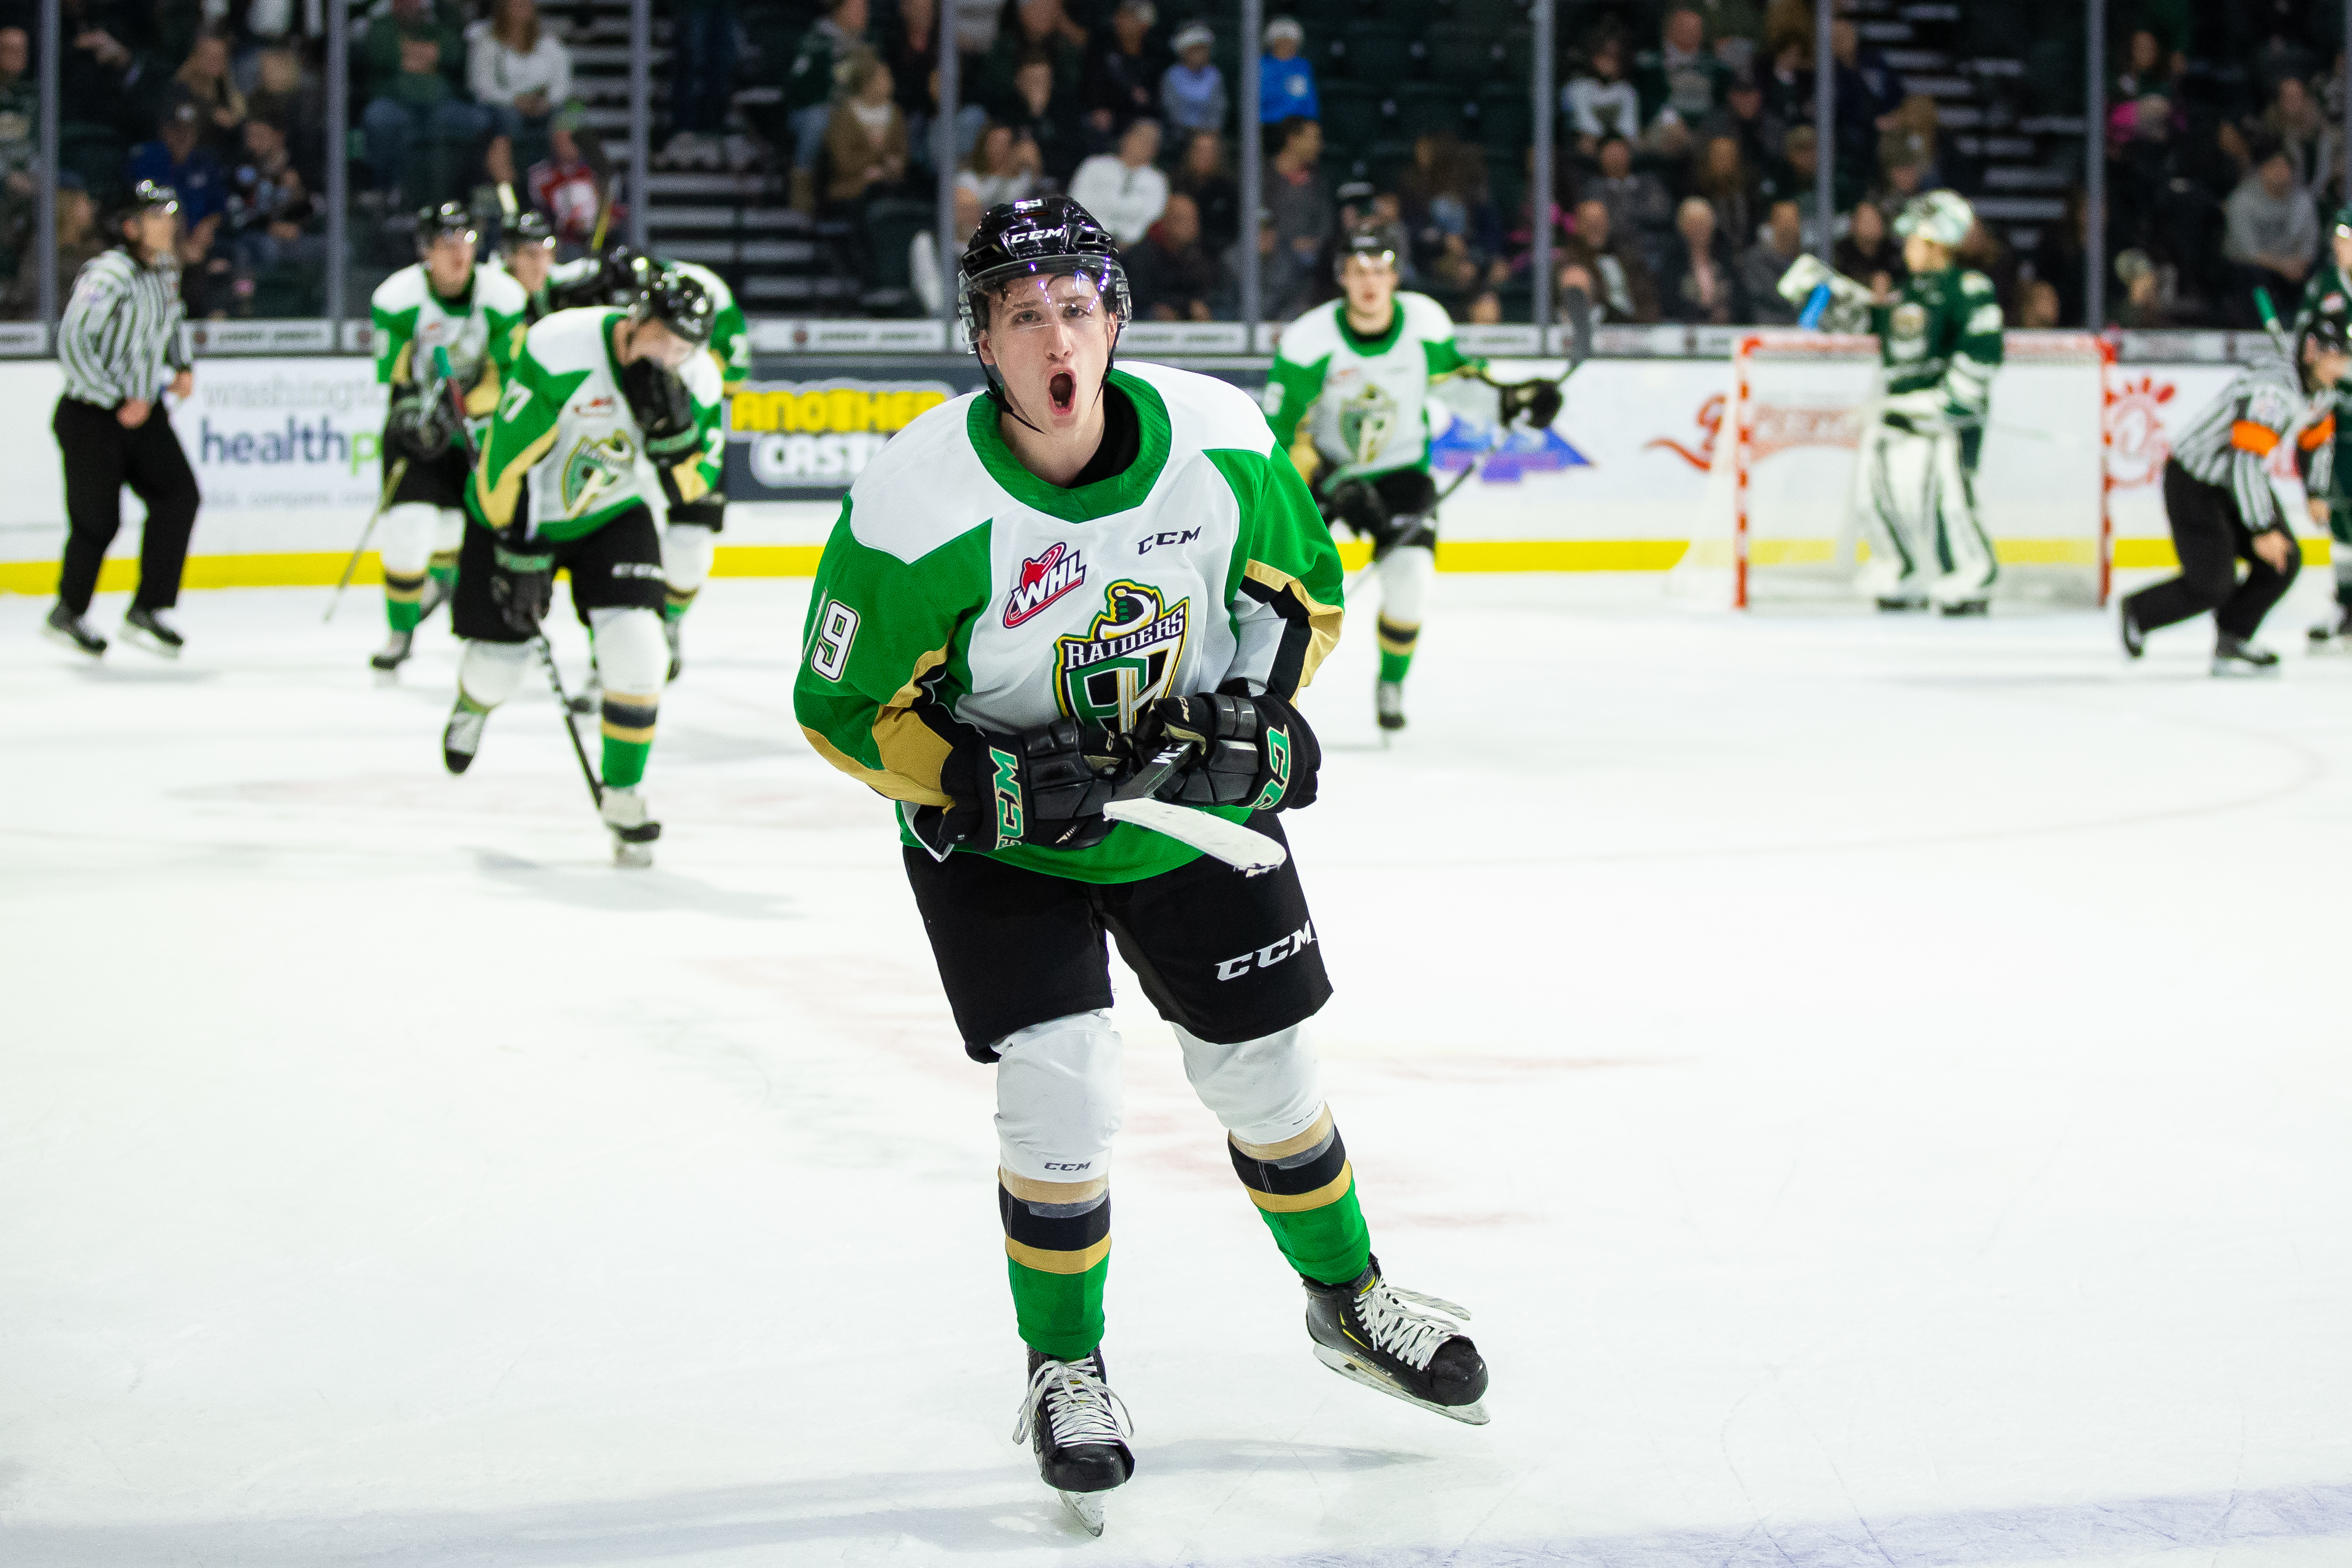 Ozzy Wiesblatt #19 of the Prince Albert Raiders celebrates scoring a goal in the closing seconds of the third period to tie the game against the Everett Silvertips at Angel of the Winds Arena on October 19, 2019 in Everett, Washington.